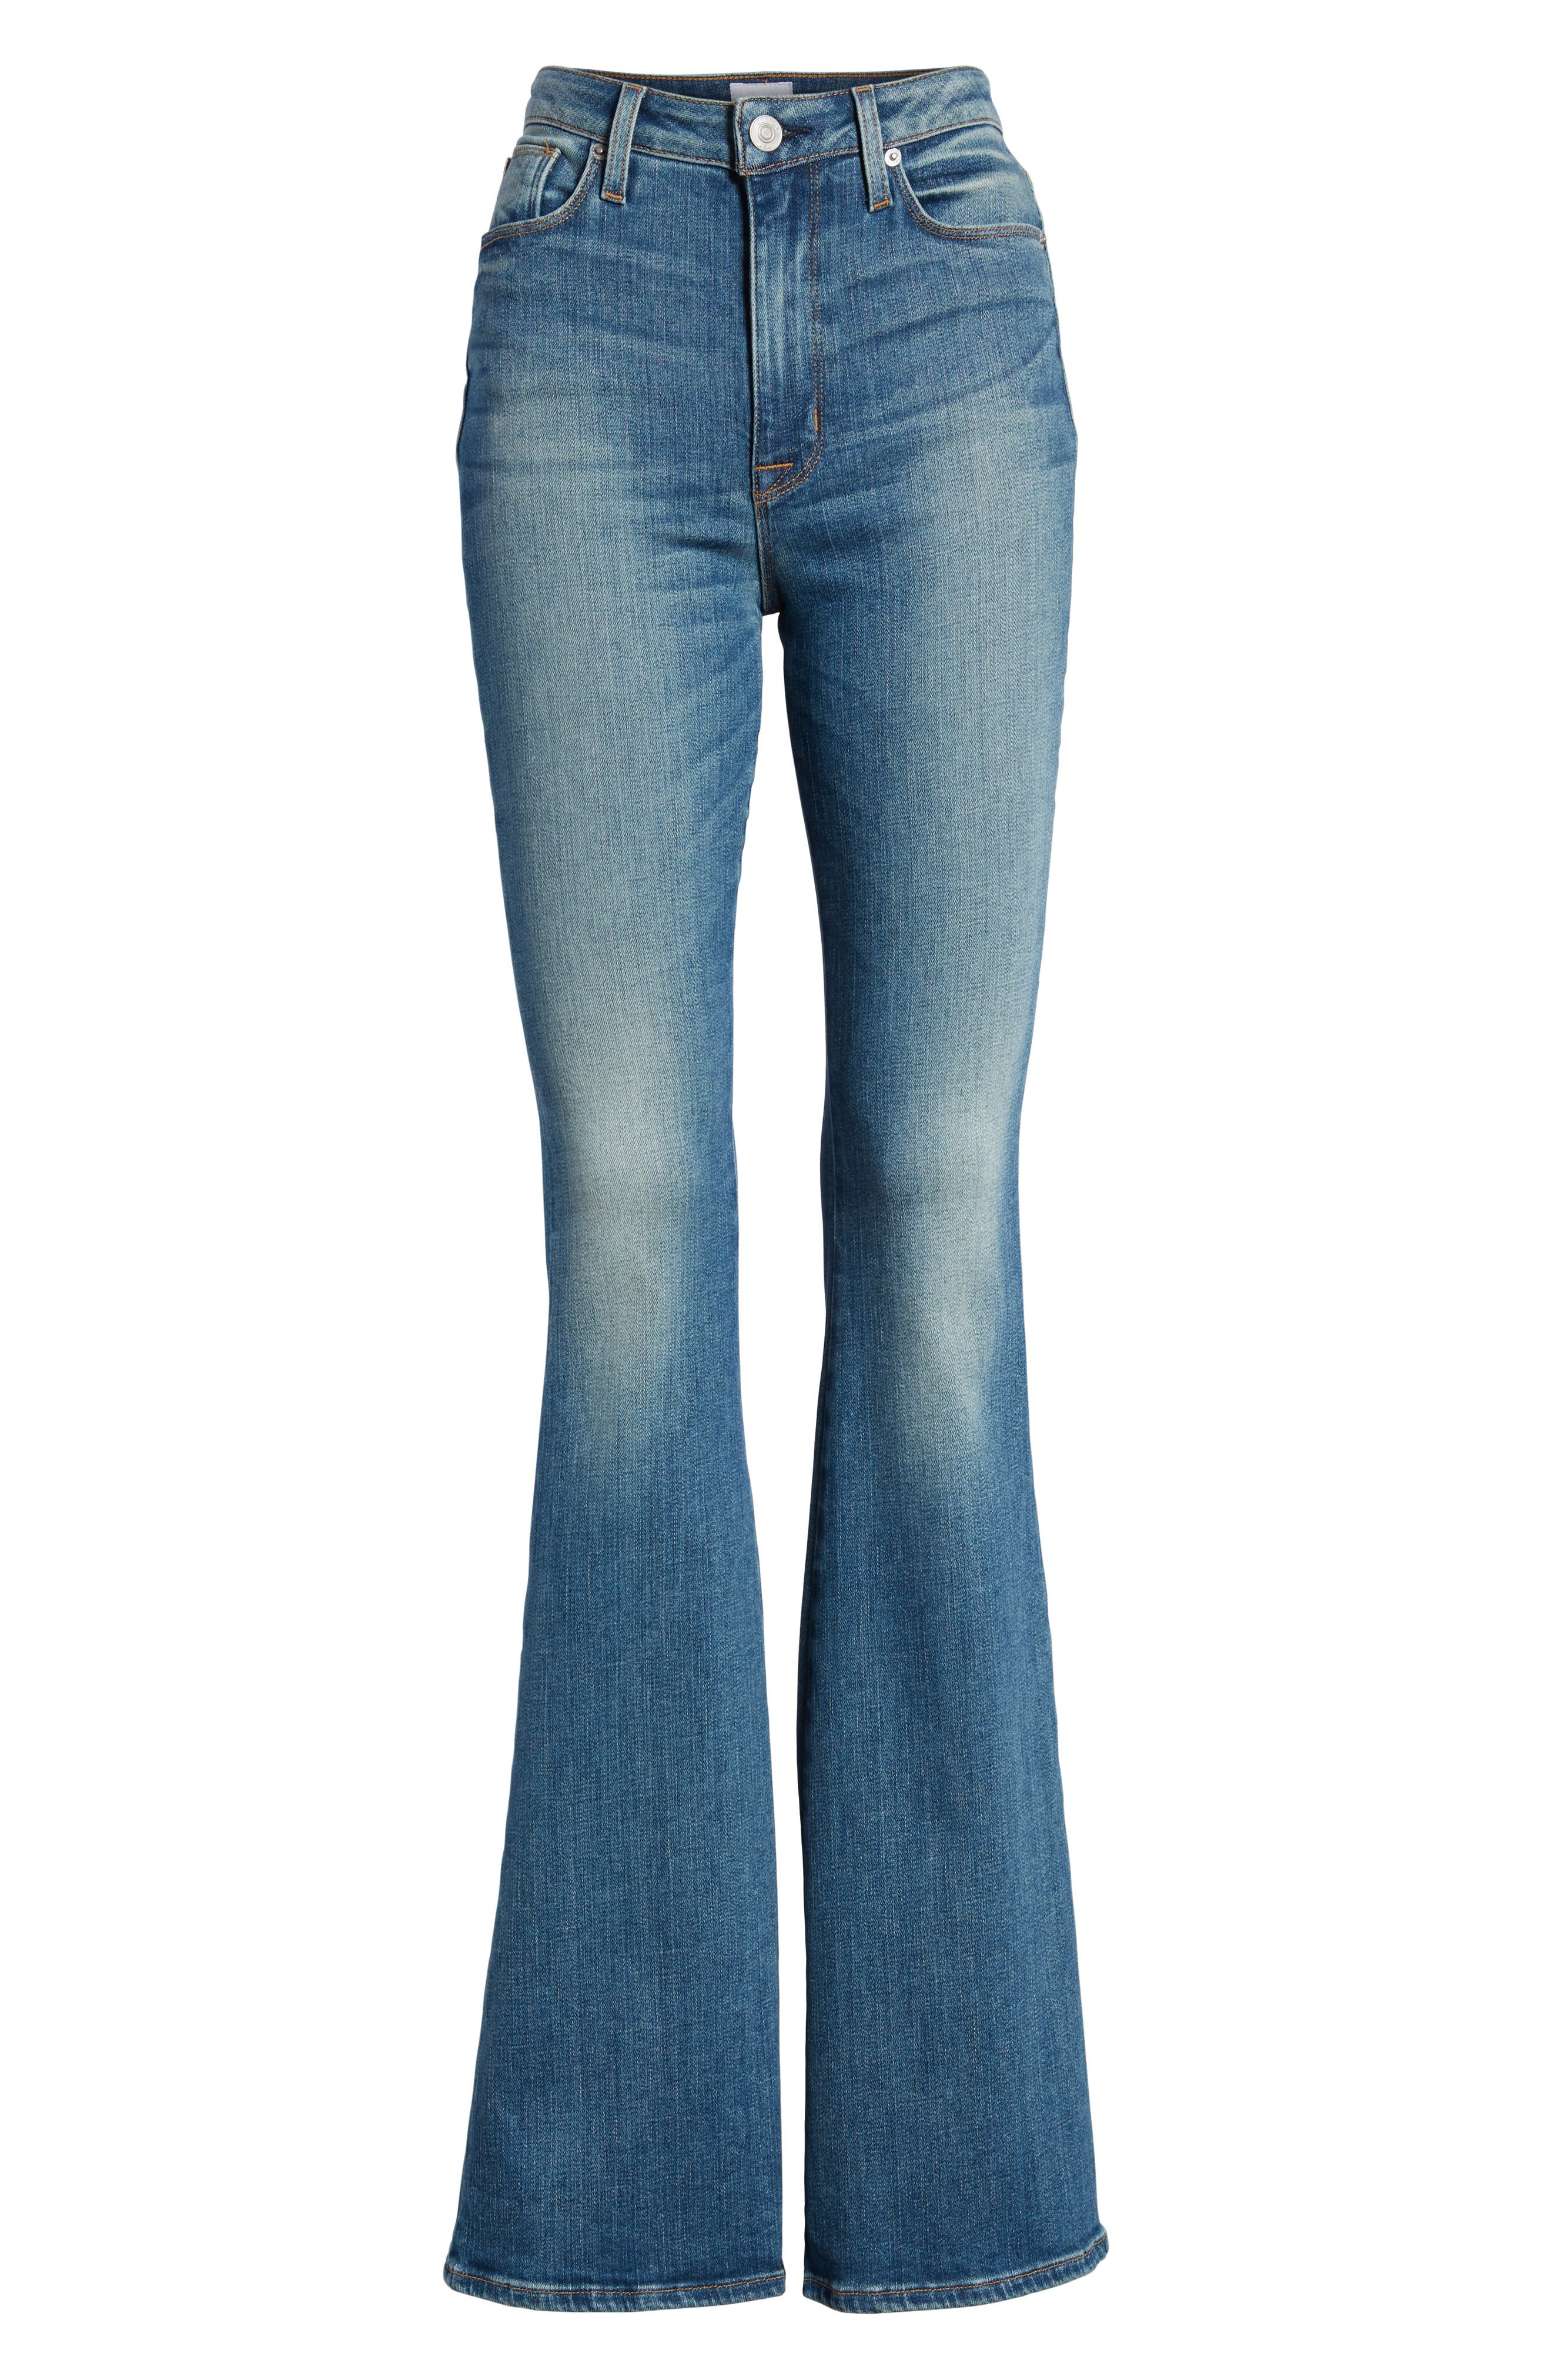 Holly High Waist Flare Jeans,                             Alternate thumbnail 7, color,                             FIRST DATE